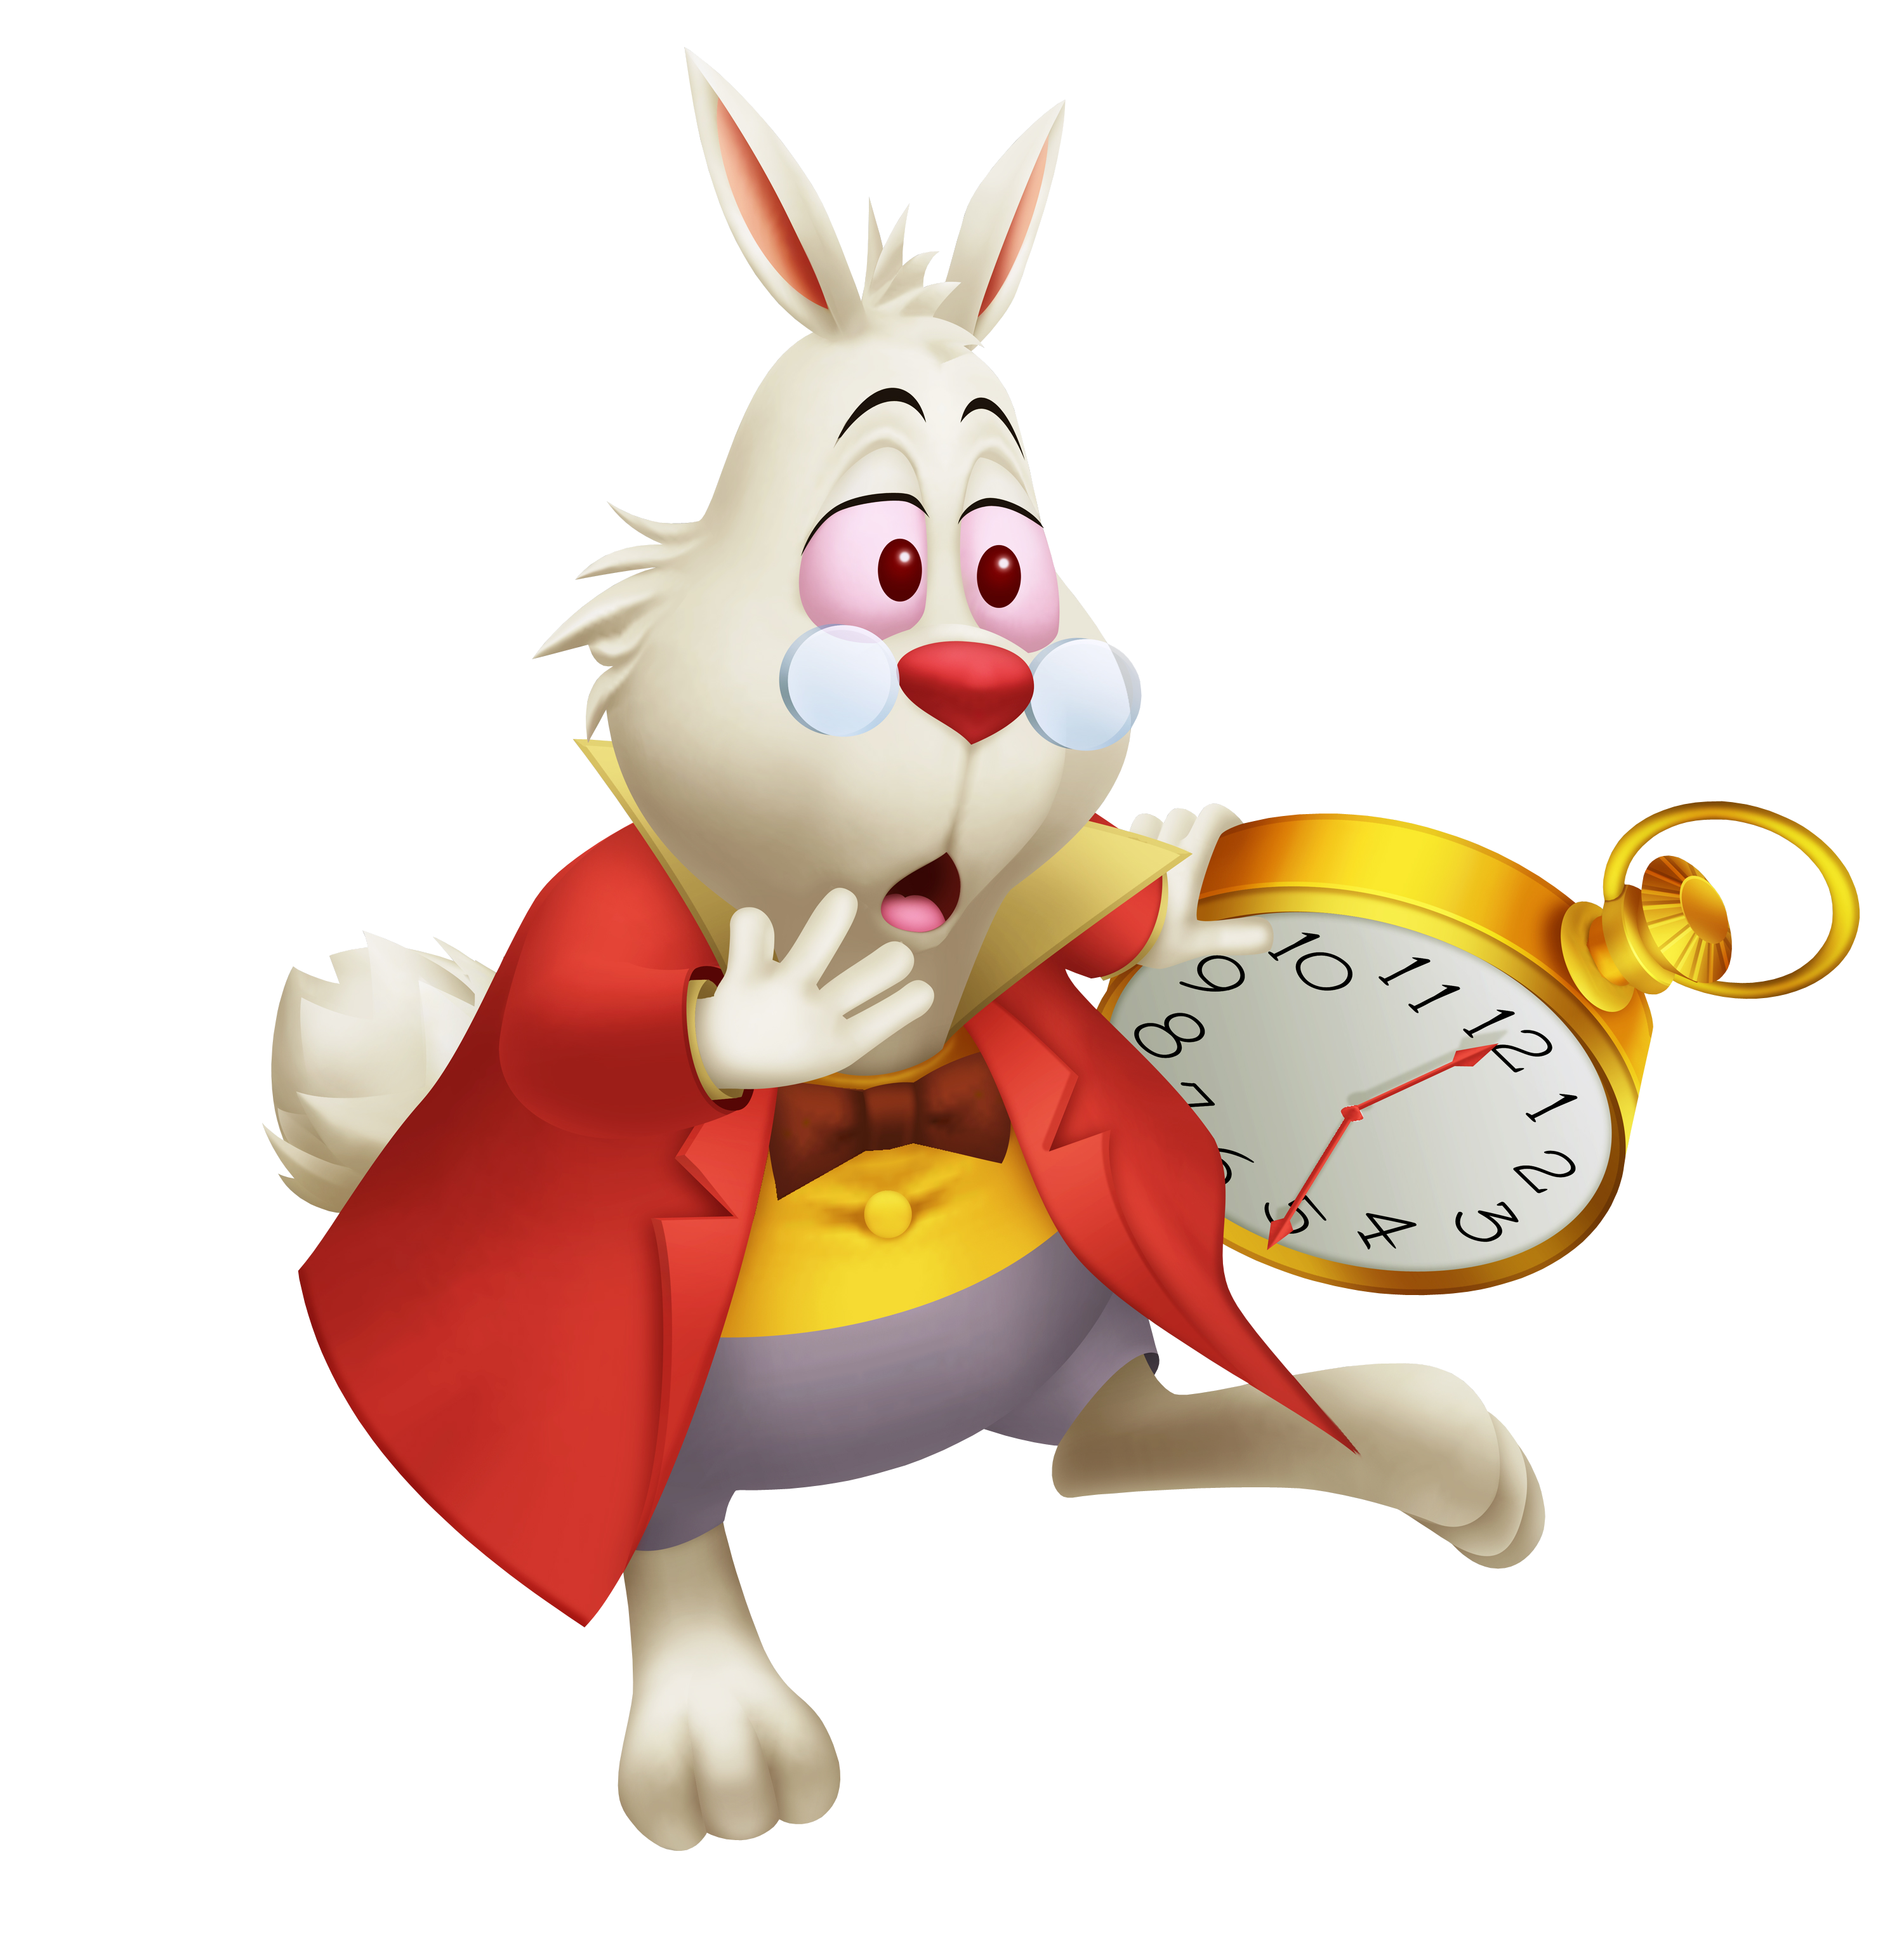 Alice In Wonderland File PNG Image